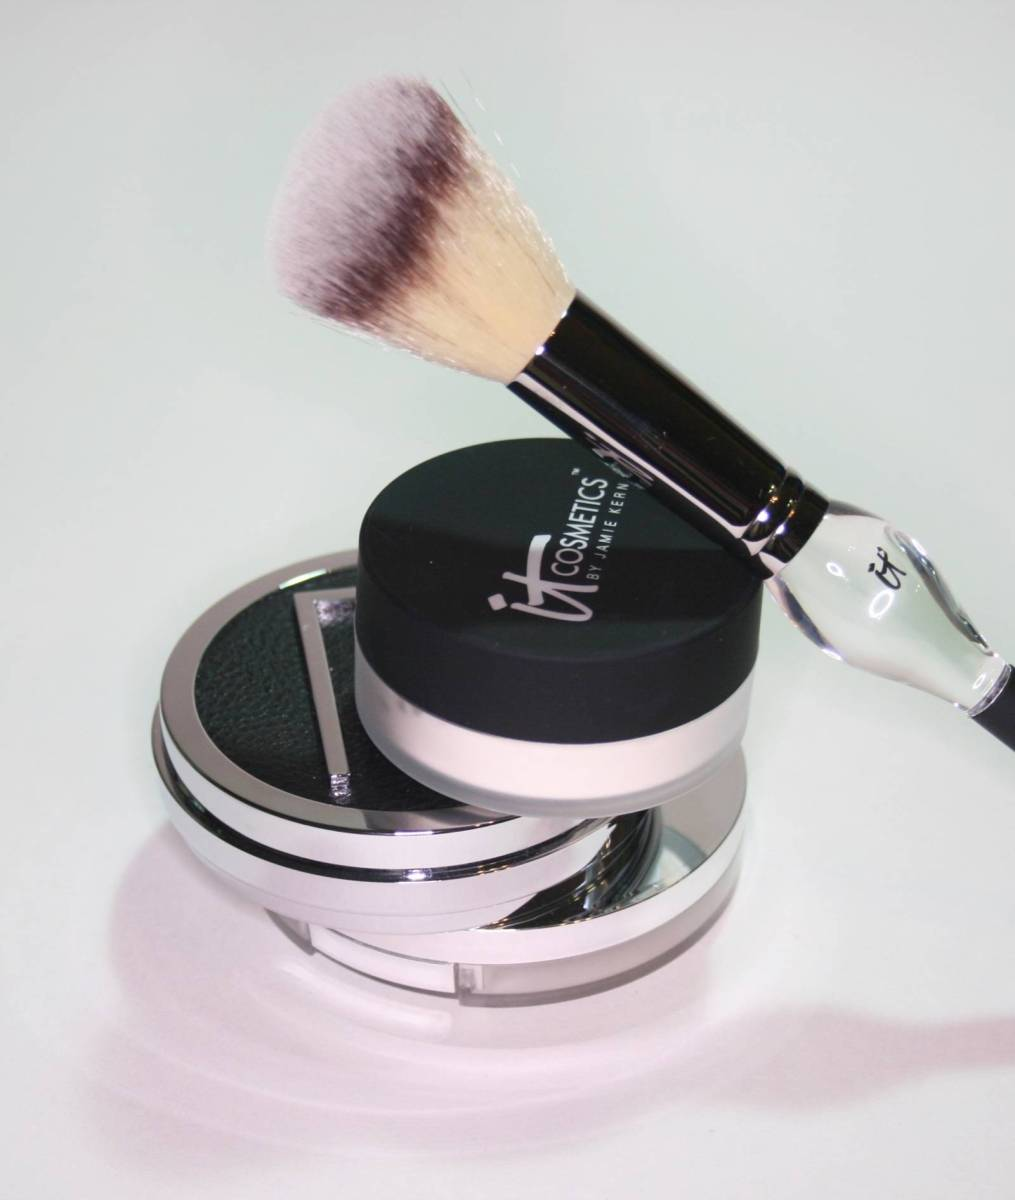 Three Non-Chalky Mattifying Powders